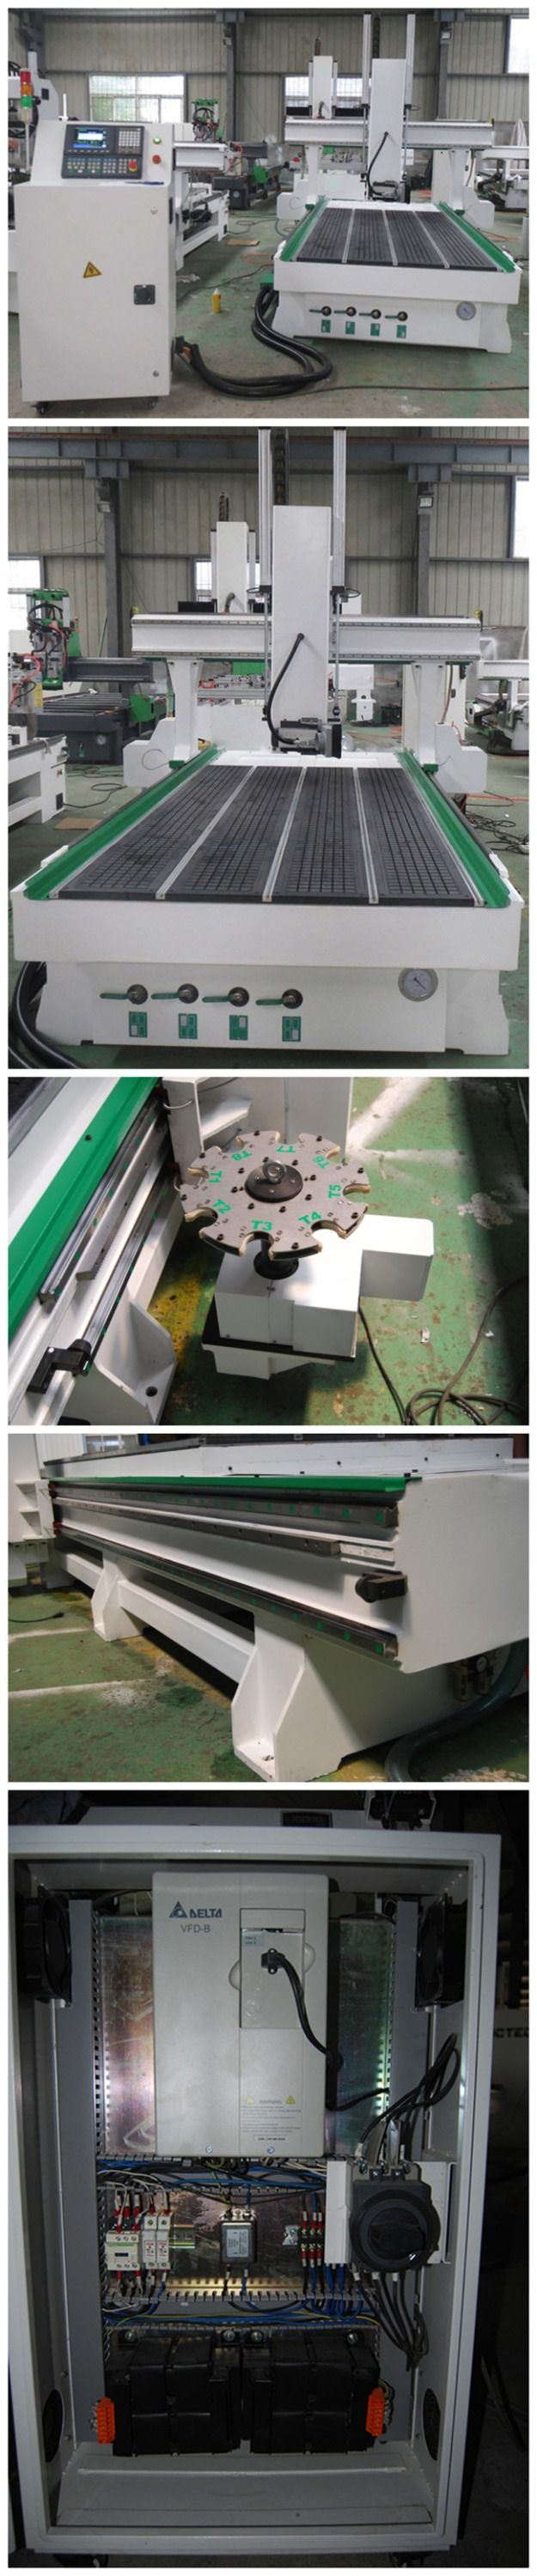 FM1325 China Jinan cheap 4 axis cnc router for sale, View 4 axis cnc router, Firm Product Details from Jinan Firm CNC Equipment Co., Ltd. on Alibaba.com